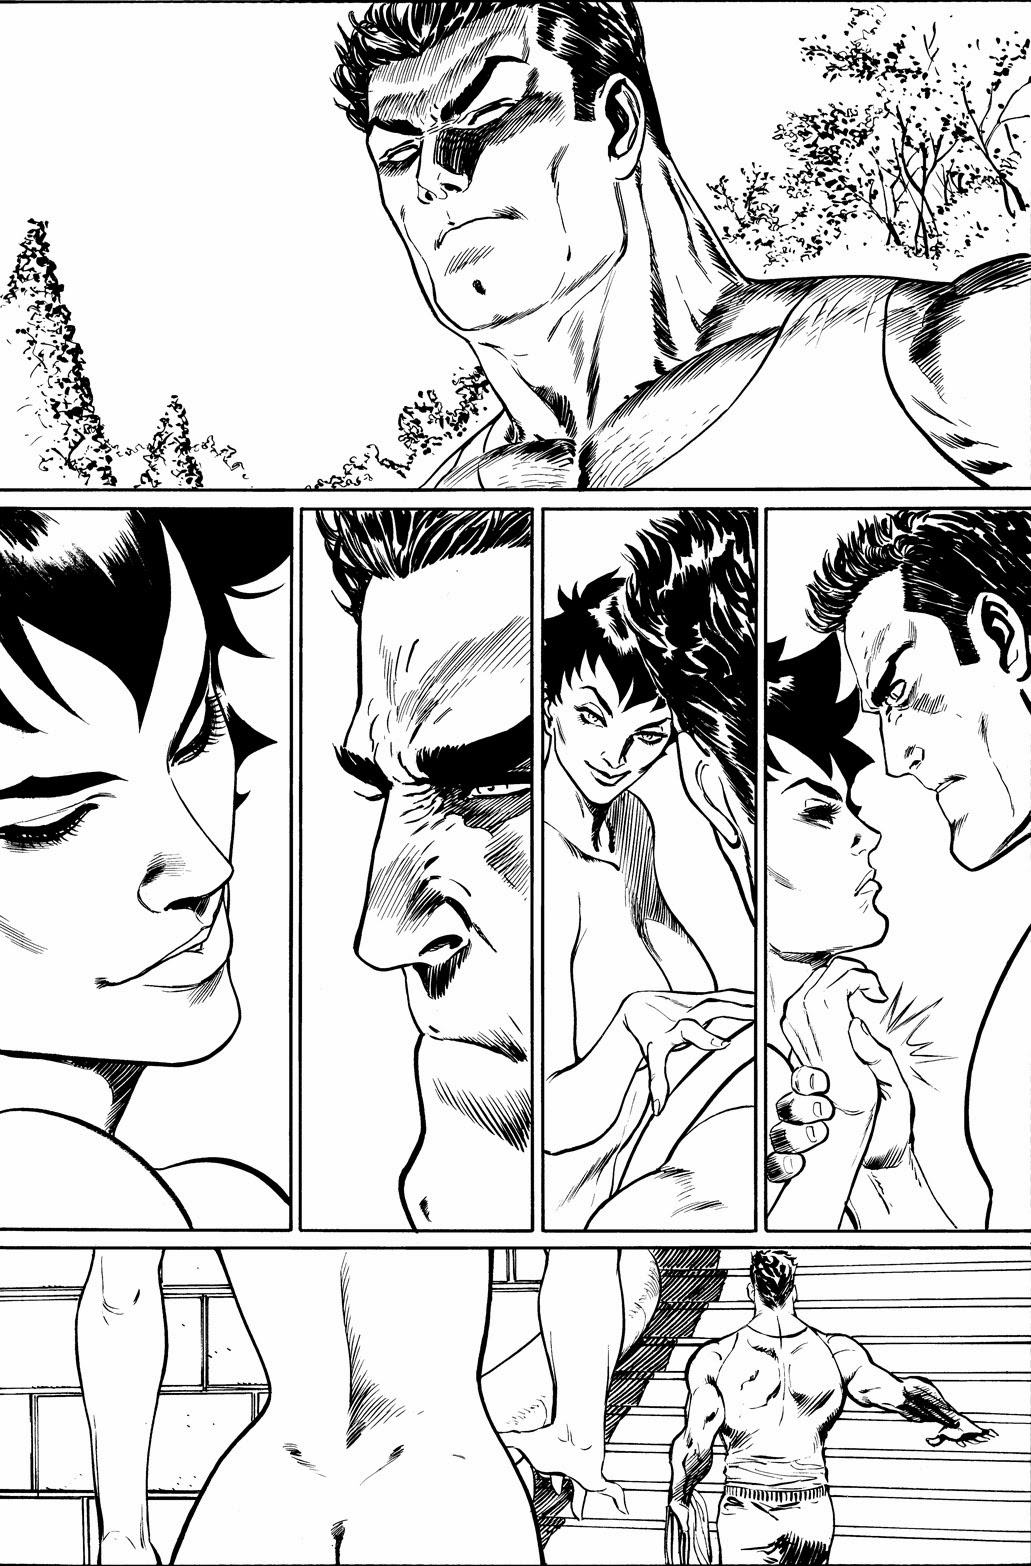 CATWOMAN #04 (more) unseen pages by Guillem March